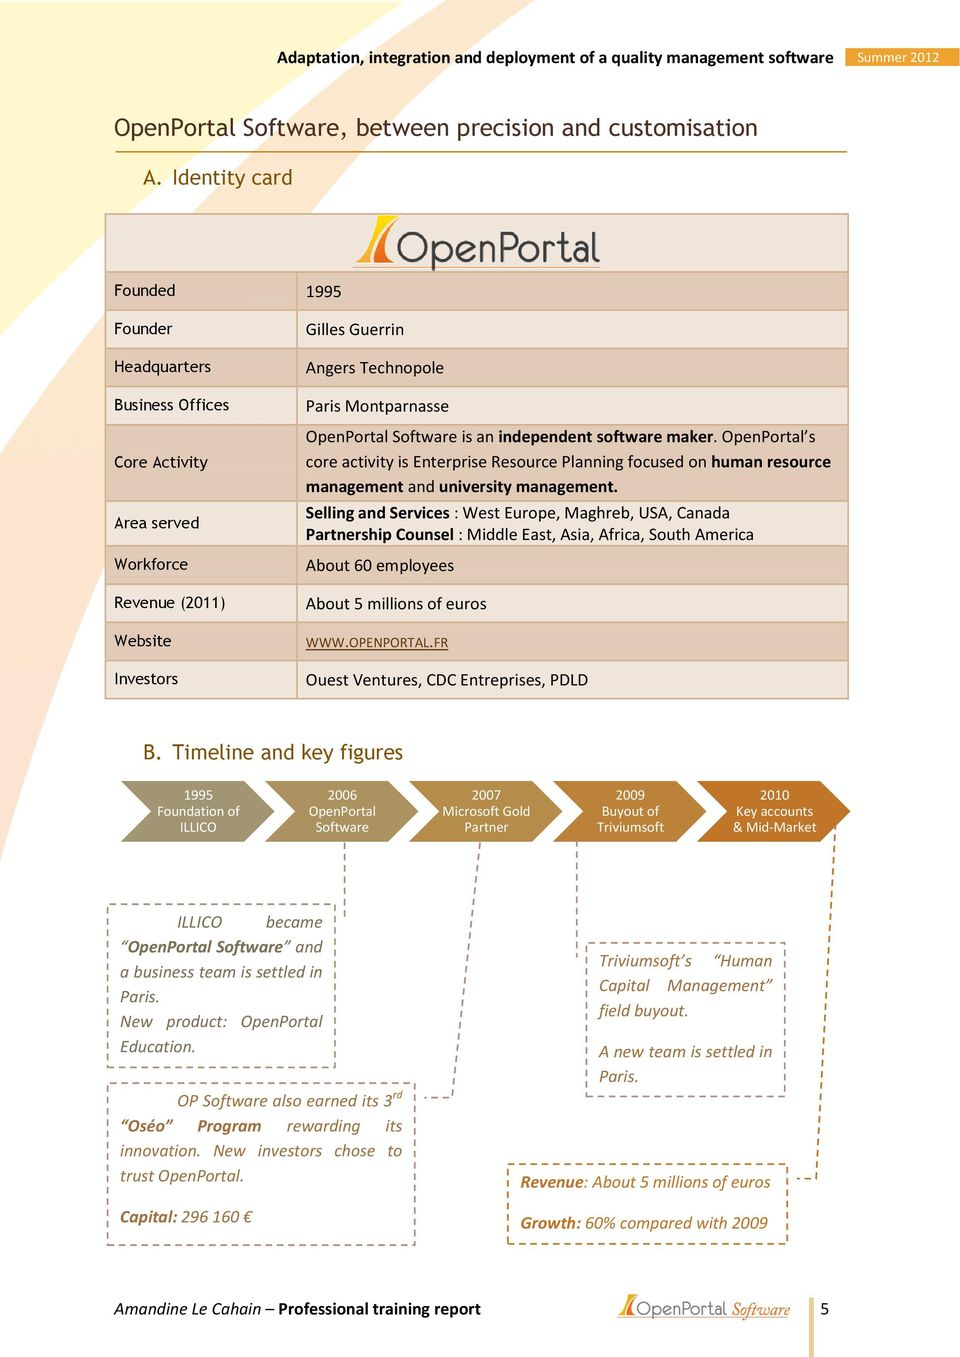 Software is an independent software maker. OpenPortal s core activity is Enterprise Resource Planning focused on human resource management and university management.